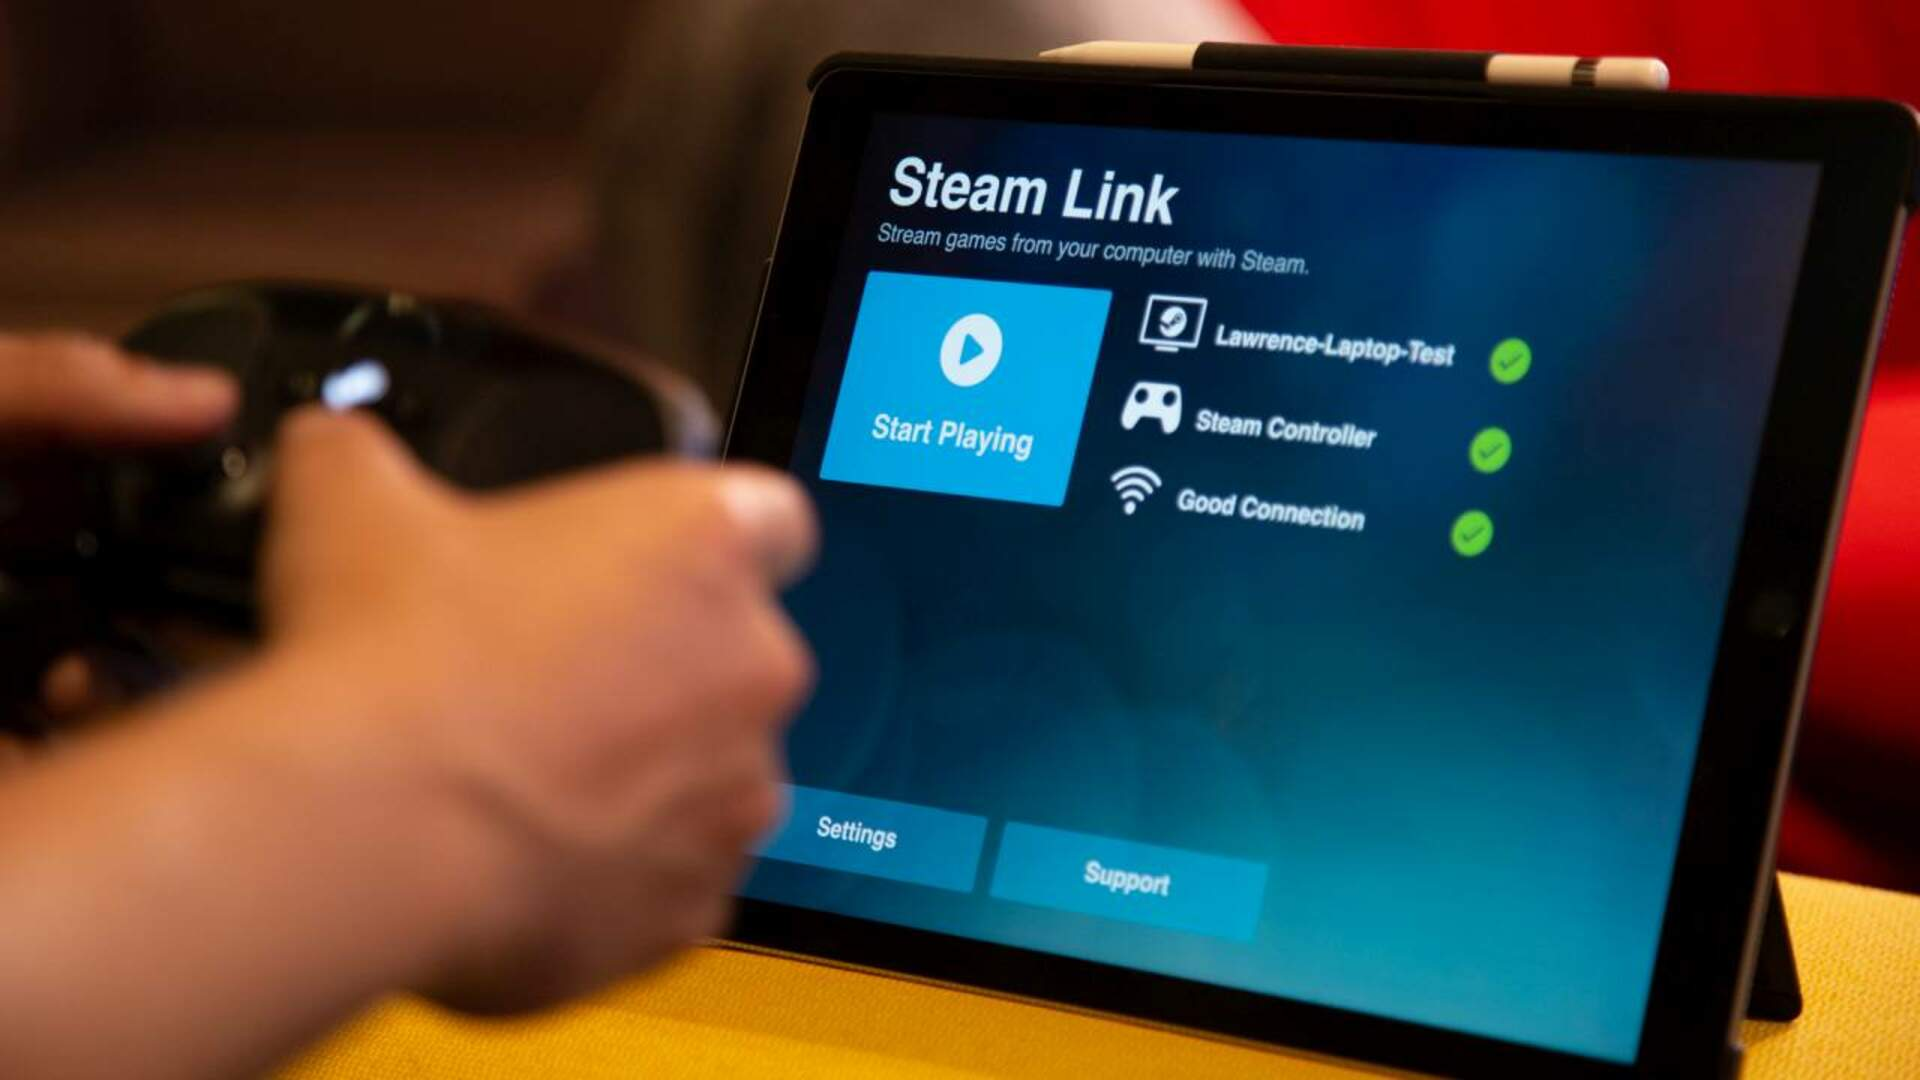 Steam Link is Finally on iOS After Being Denied Due to 'Business Conflicts'